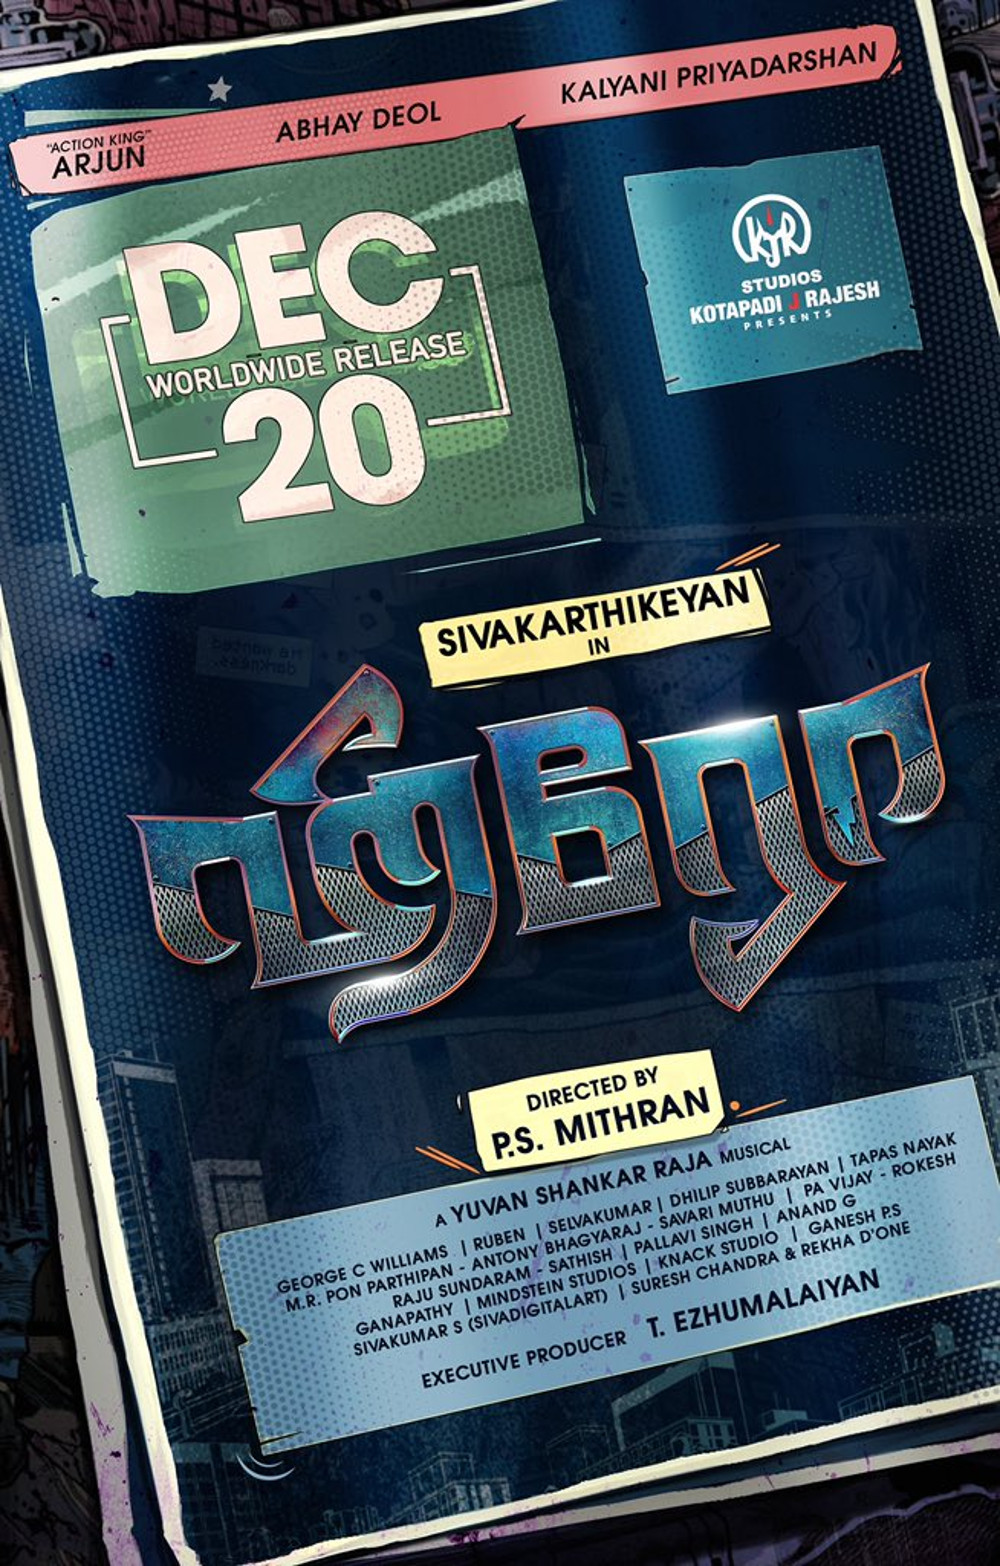 Sivakarthikeyan's Hero Movie Release Date on Dec 20